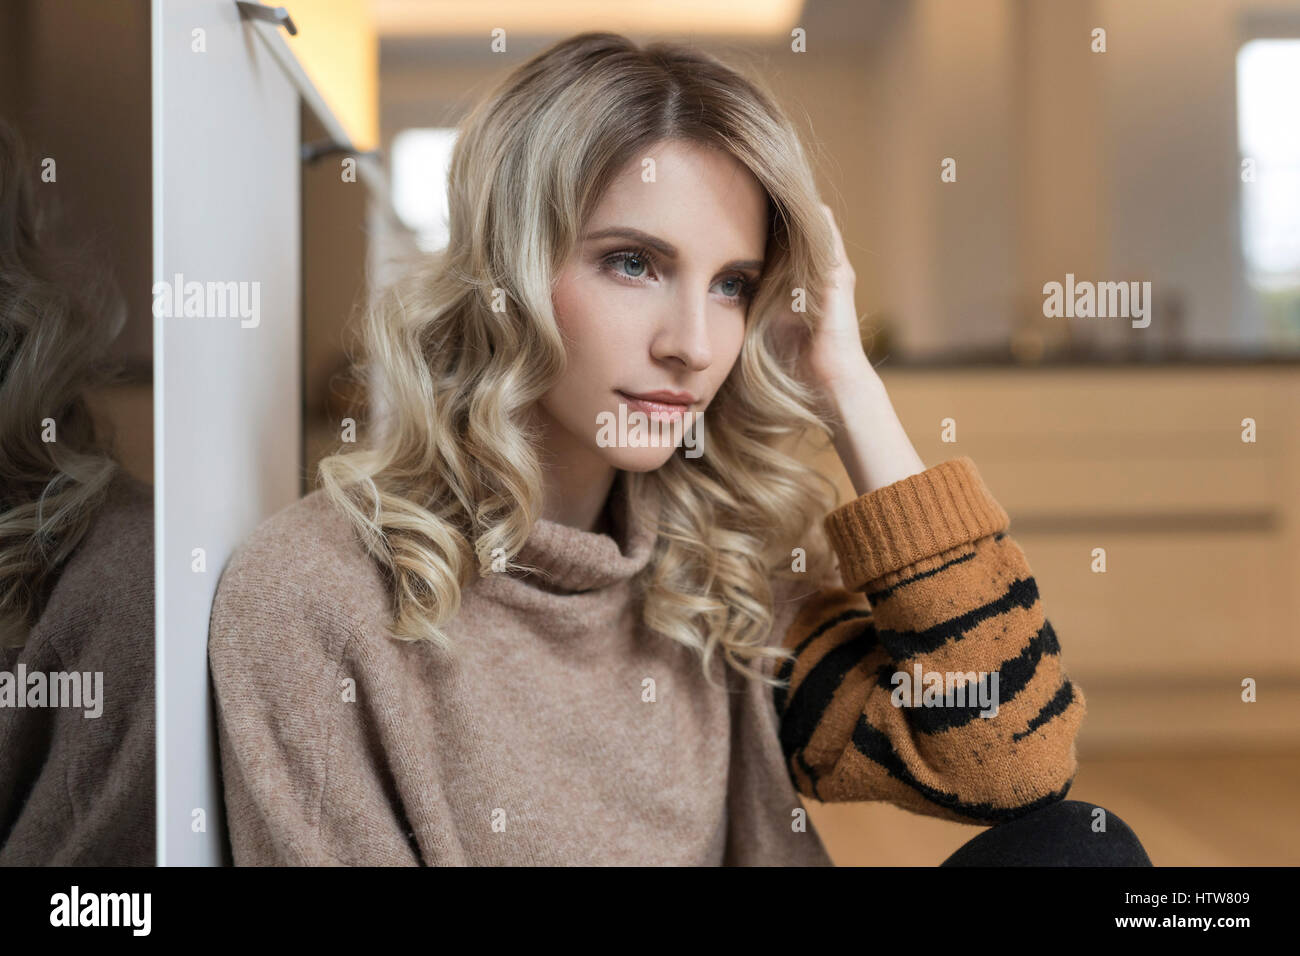 Portrait of a blond woman in the kitchen - Stock Image